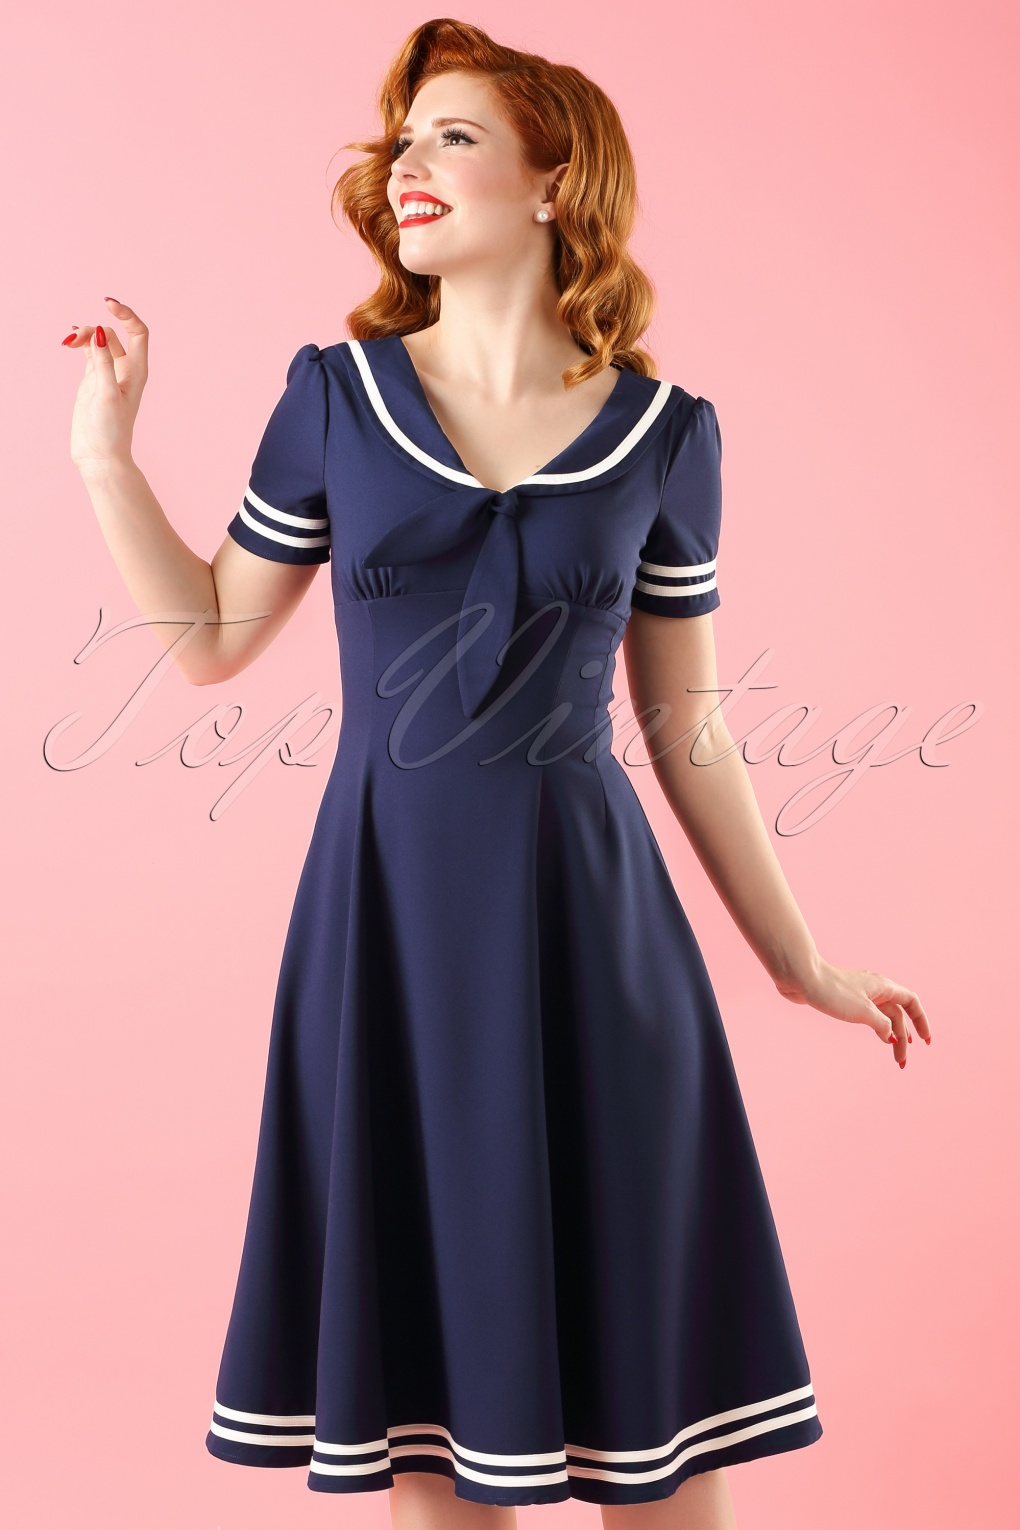 Swing Dance Clothing You Can Dance In 50s Ambleside Swing Dress in Navy £55.65 AT vintagedancer.com